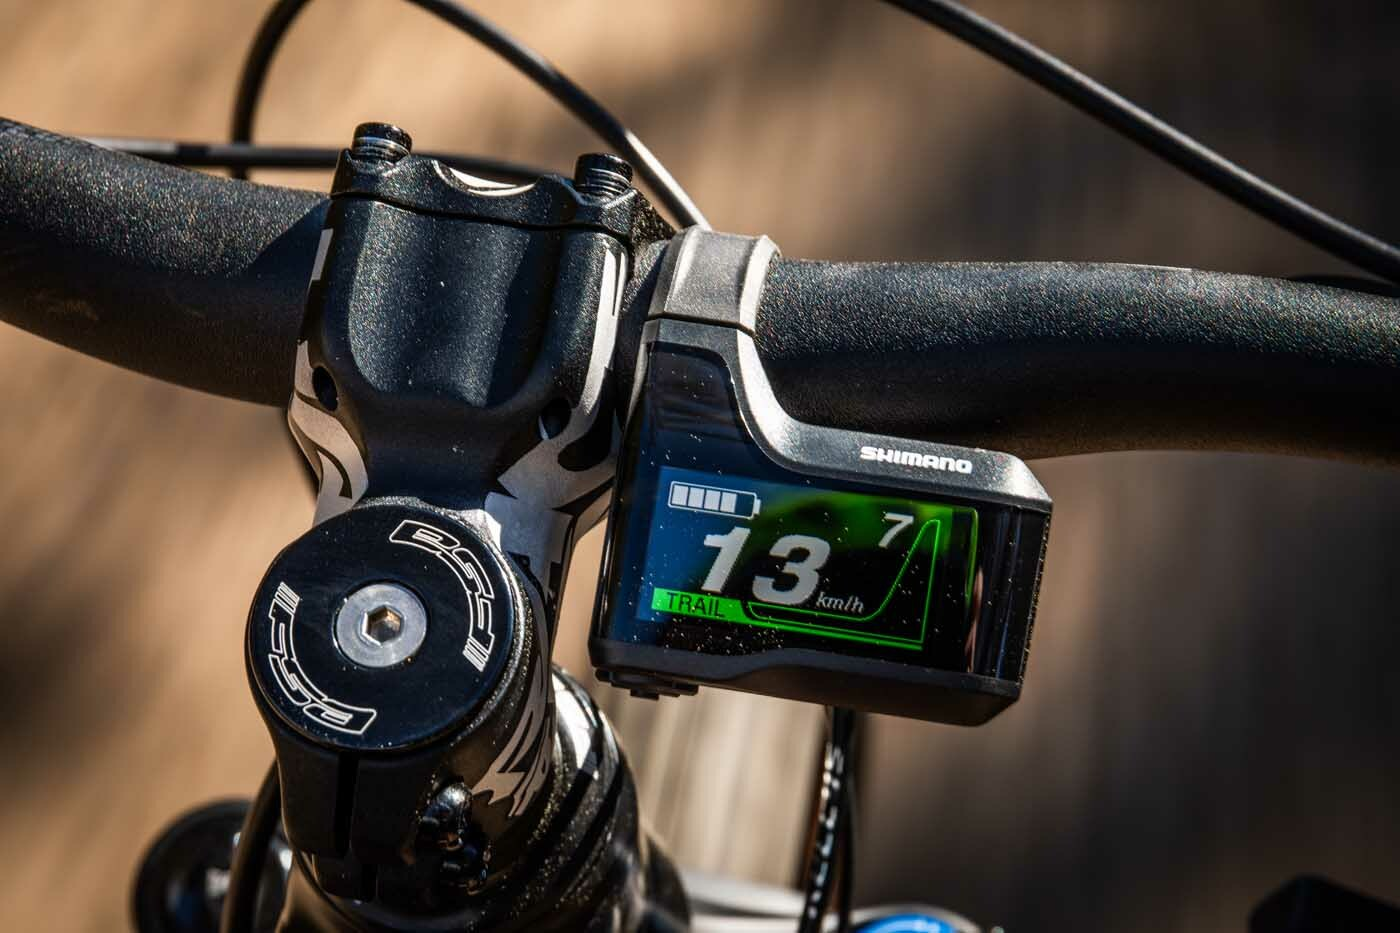 [E]volution: E-Bike motor 'power' modes 101